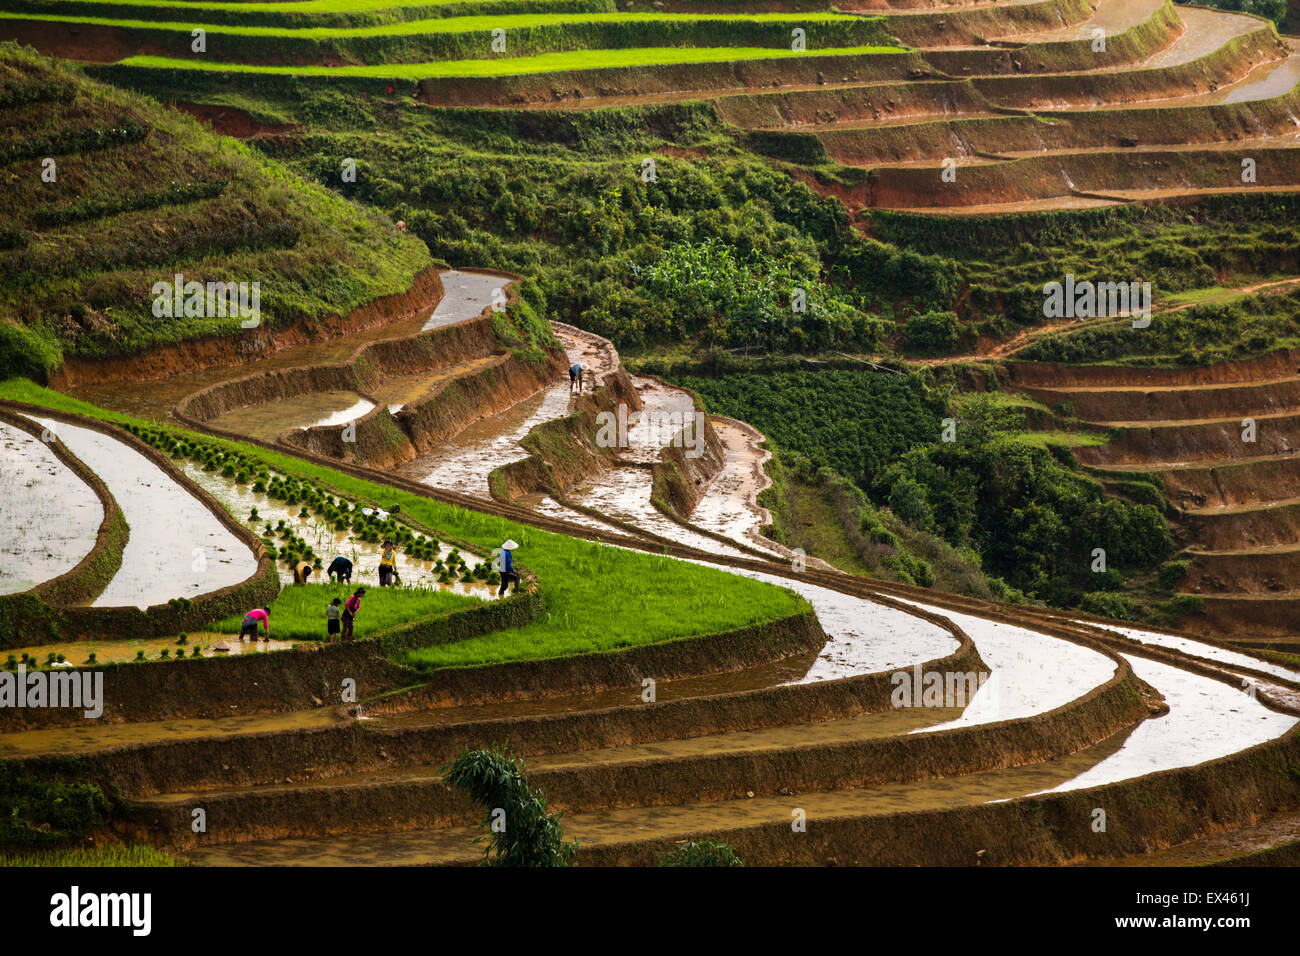 Farmers planting rice in terraces paddies between Sapa and Lao Cai in northern Vietnam during rainy season. - Stock Image